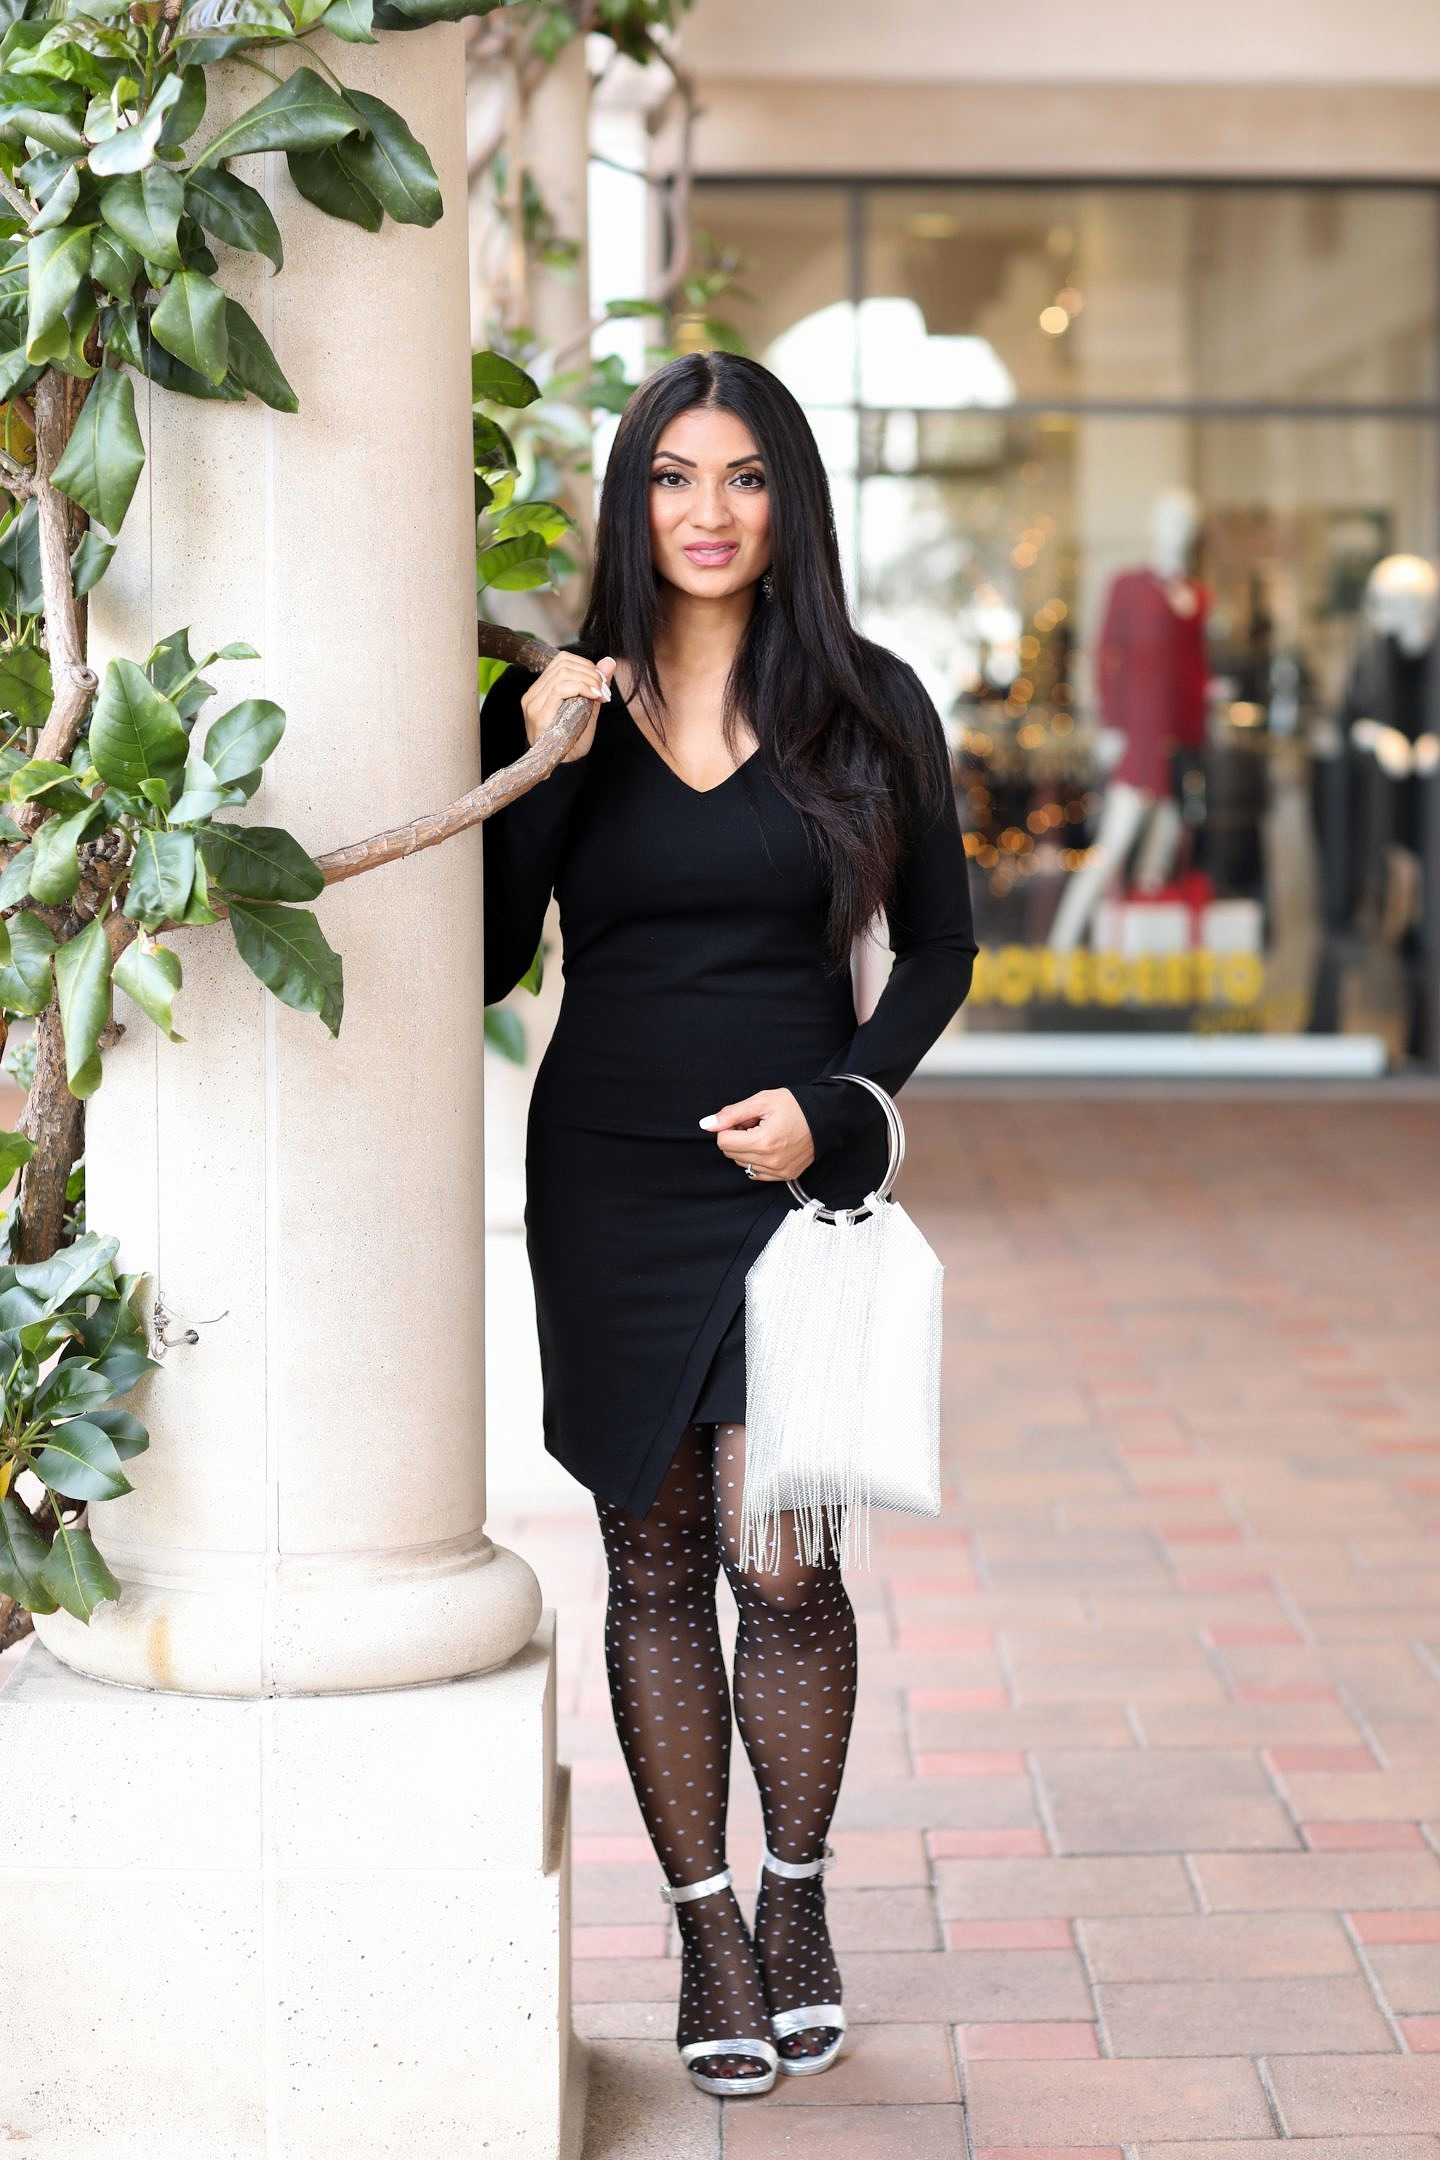 Looking for the perfect LBD this season? Orange County Blogger Debbie Savage is sharing her favorite LBD wirh unexpected details here!